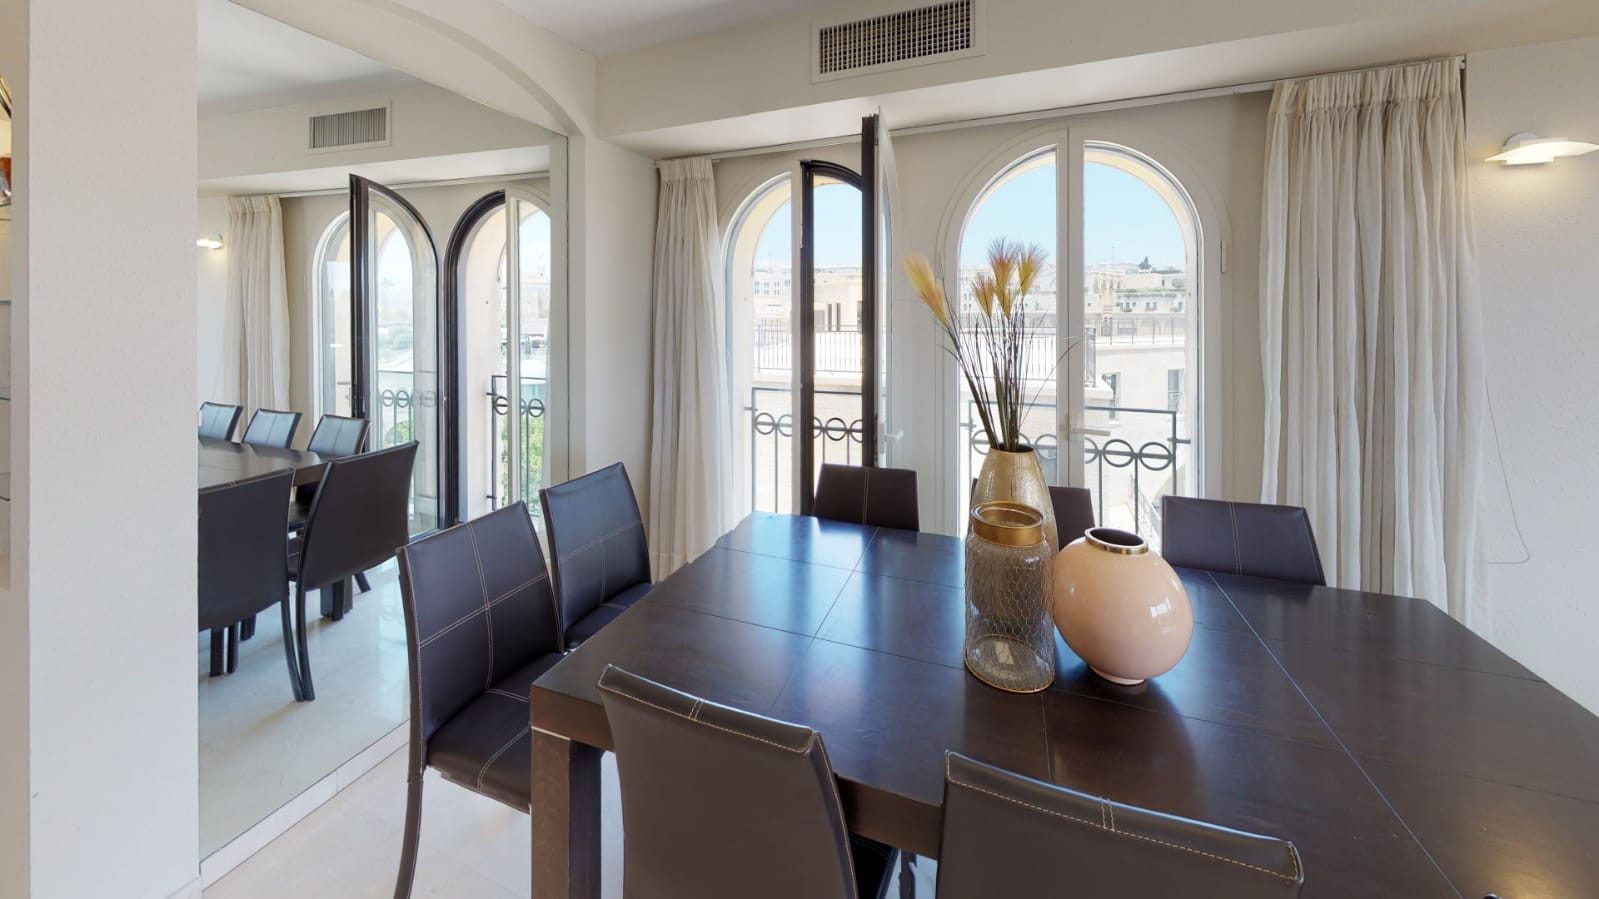 3.Old City views Luxury Mamilla 3 BR image #19